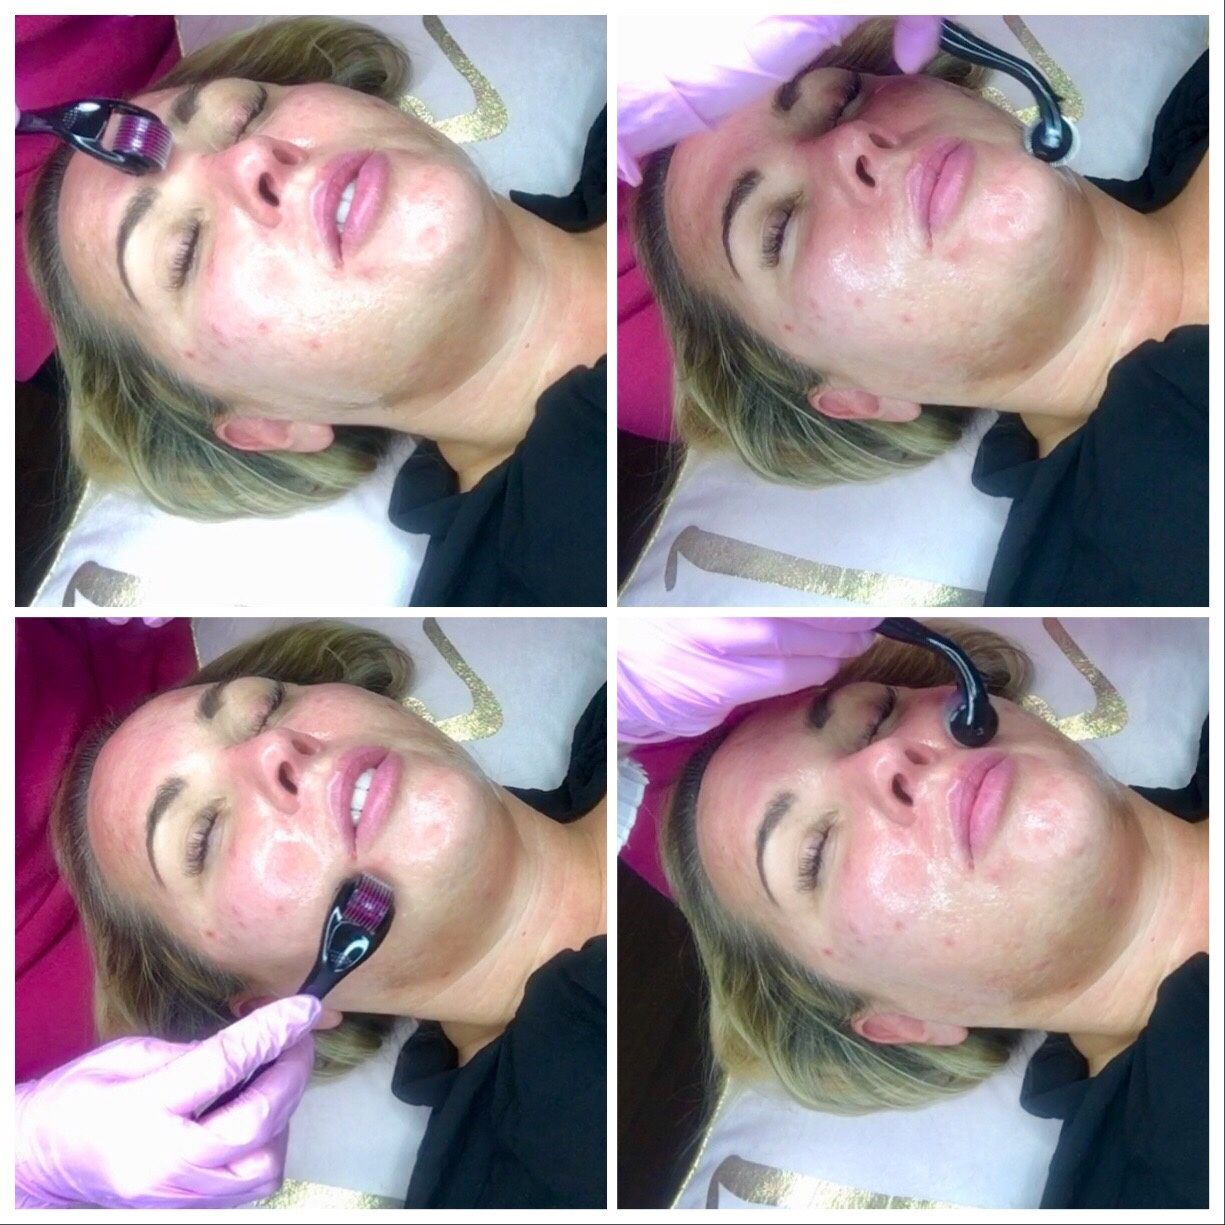 Derma Planning and Derma Roller my review on the diamond facial from house of glam